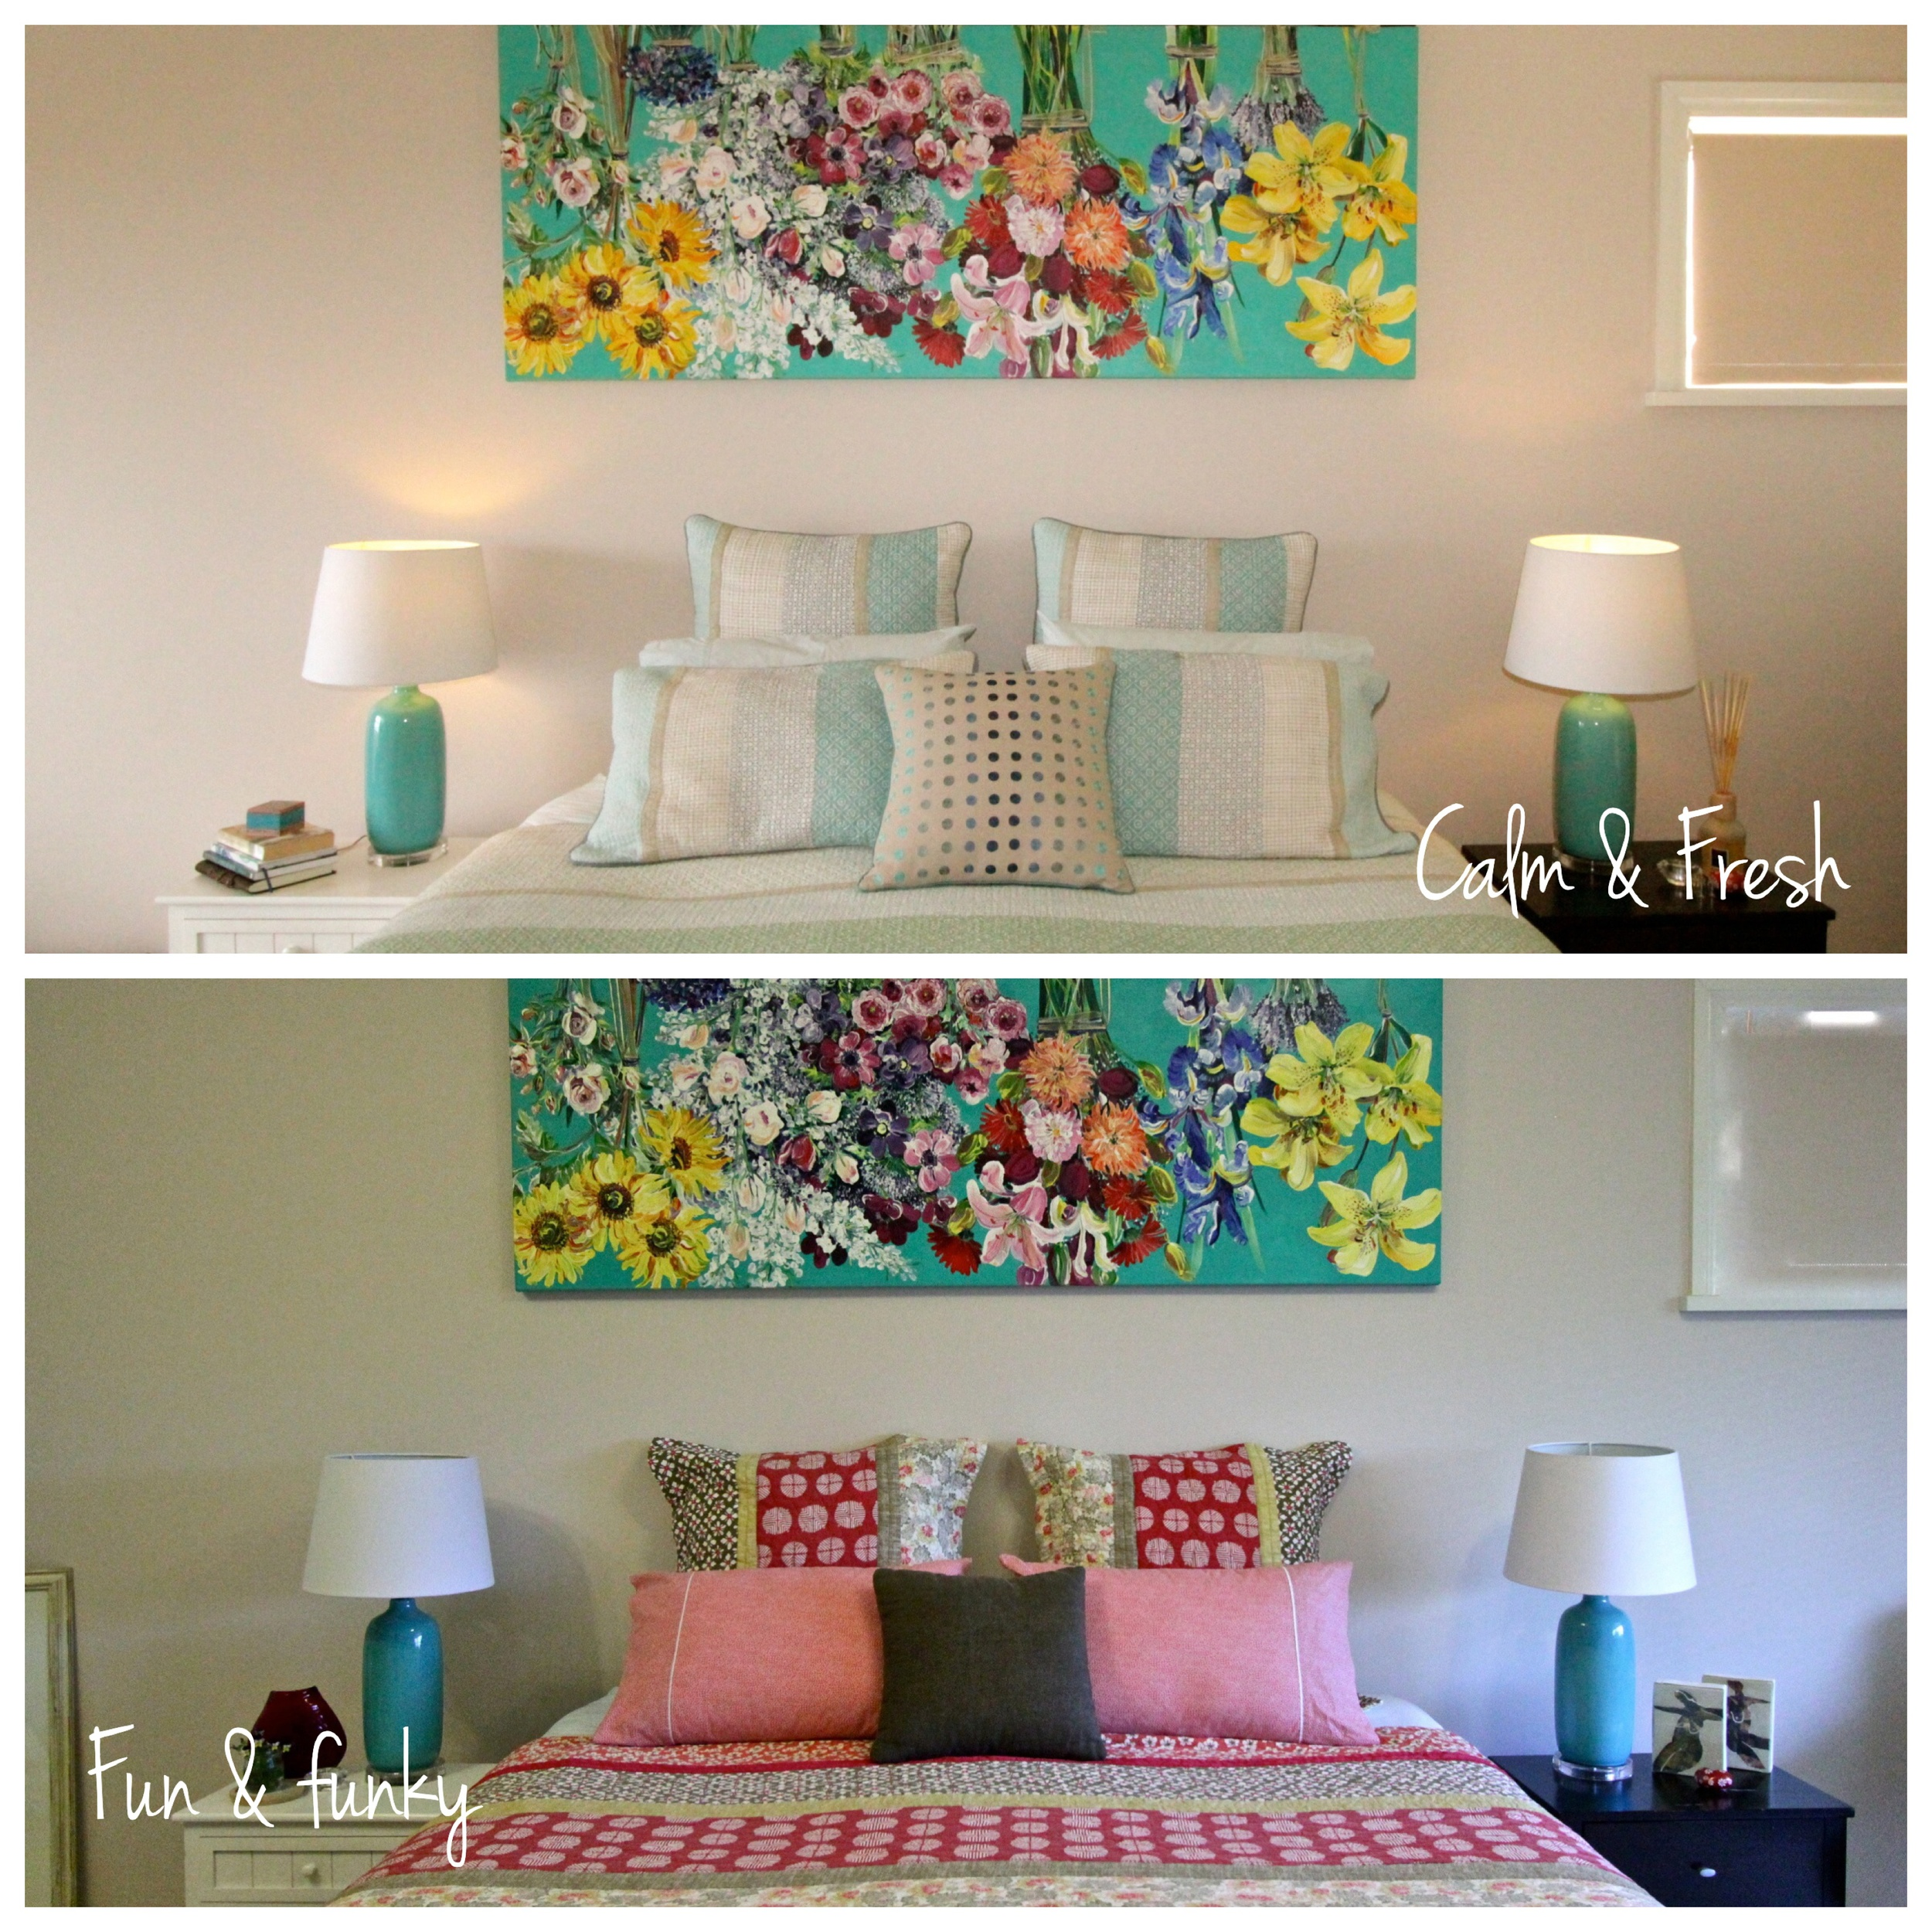 From concept to completion csd colour style design provide a wide variety of interior styling interior decorating services we create spaces that are